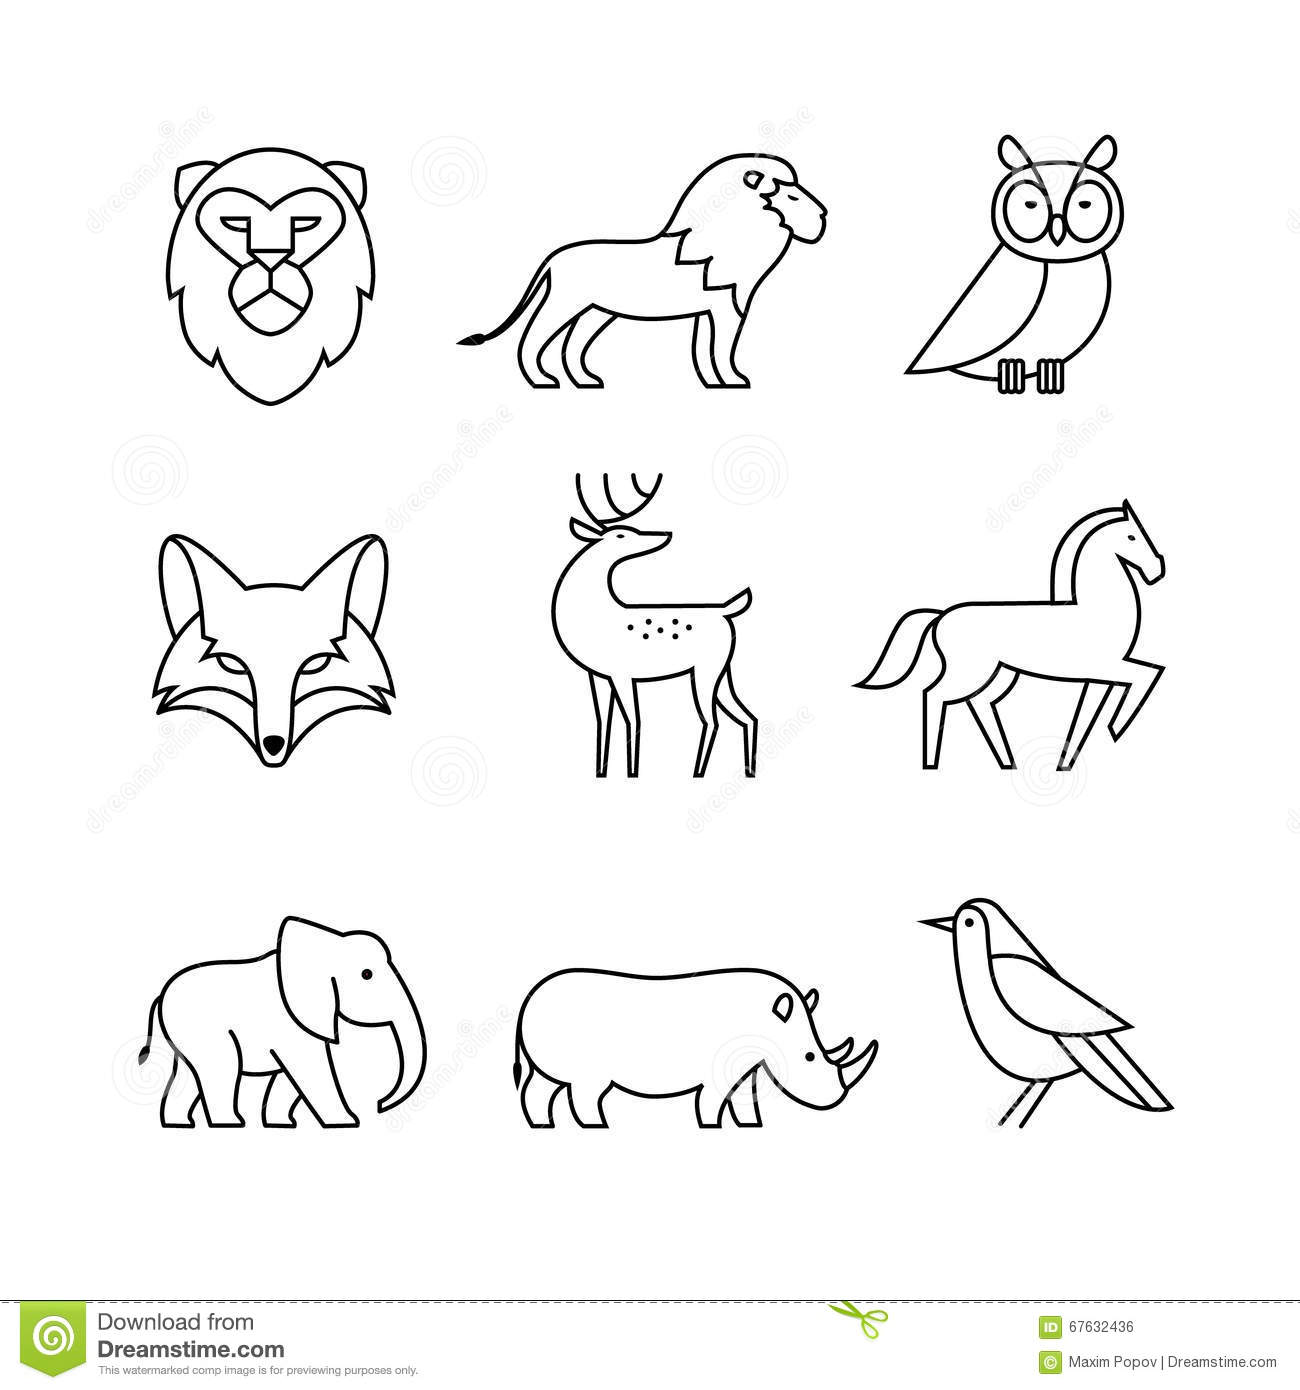 Line Art Icons : Popular wild life animals thin line art icons set stock